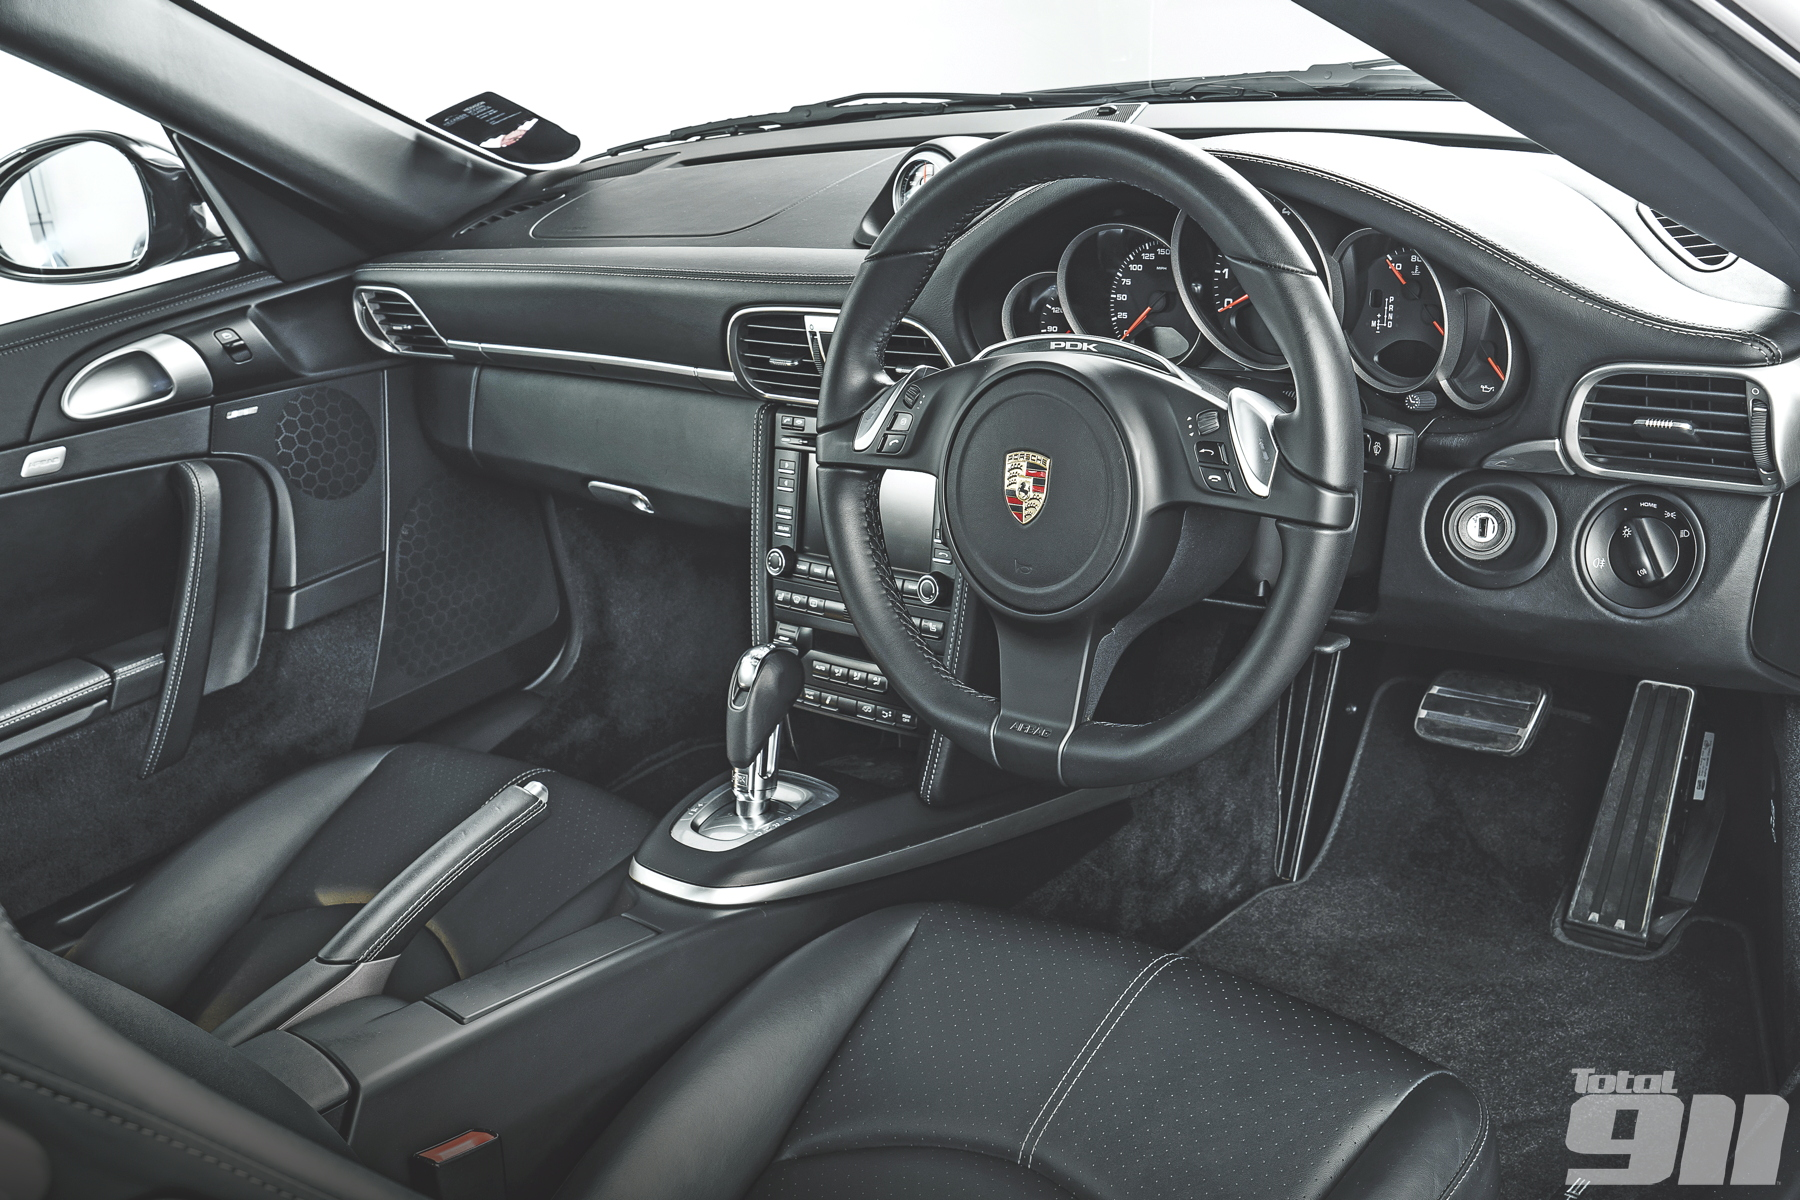 997 Carrera GTS interior